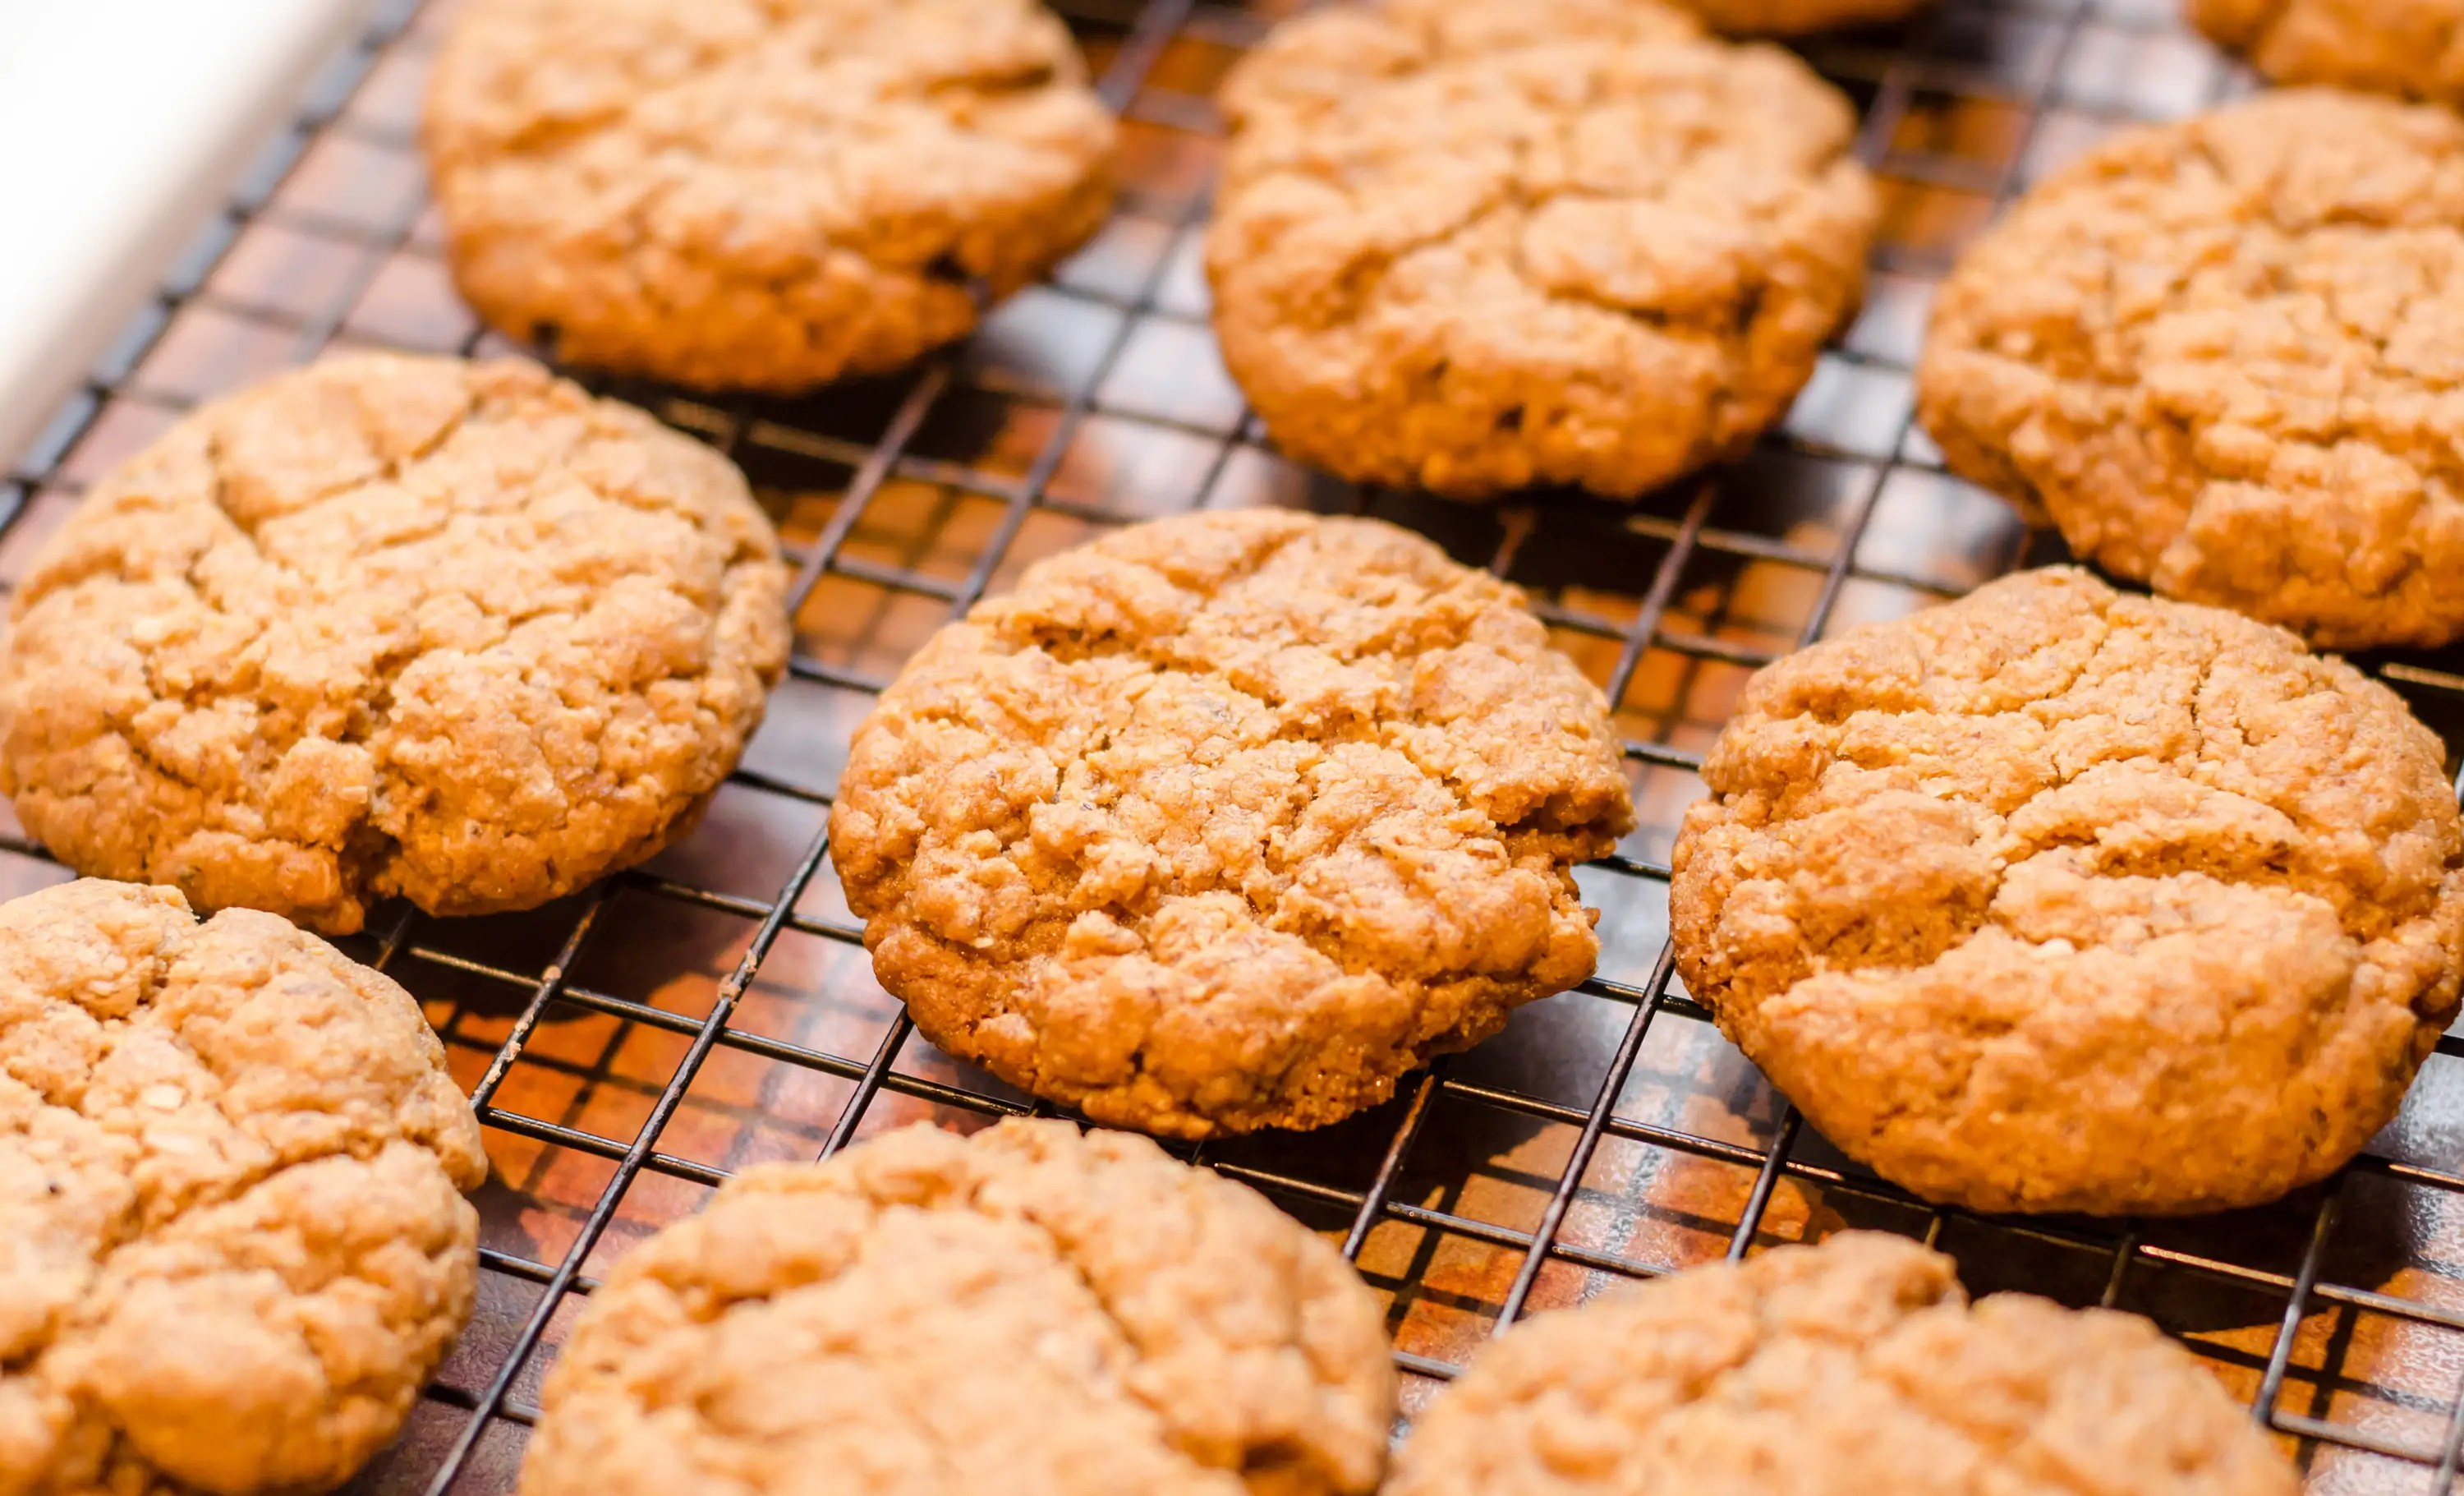 Vegan Peanut Butter Cookies (Gluten Free, Too)